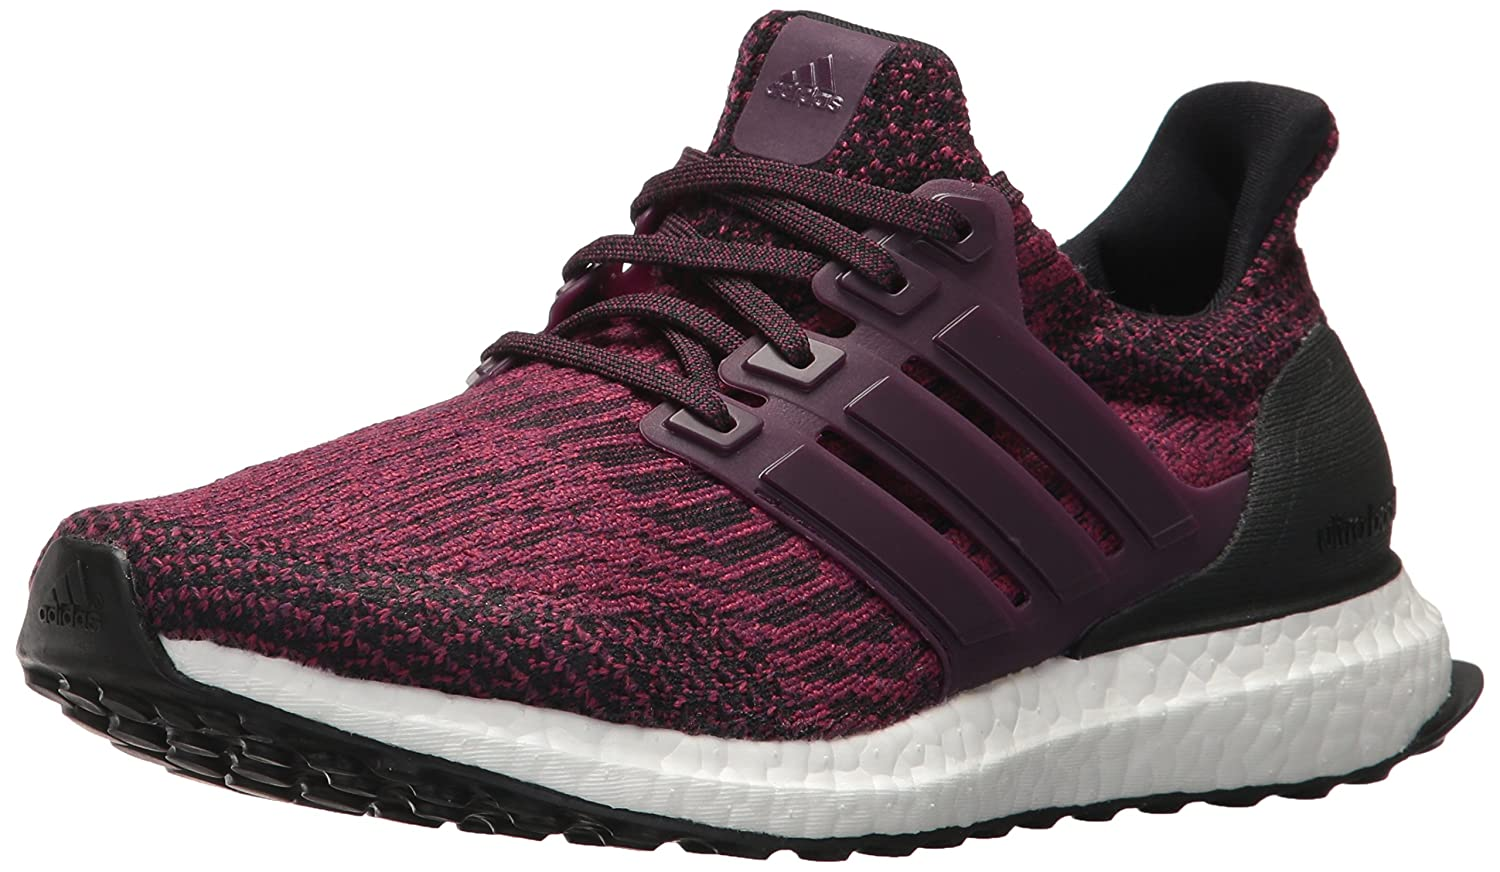 adidas Women's Ultraboost W Running Shoe B06XWSZXT9 6.5 B(M) US|Red Night/Red Night/Black